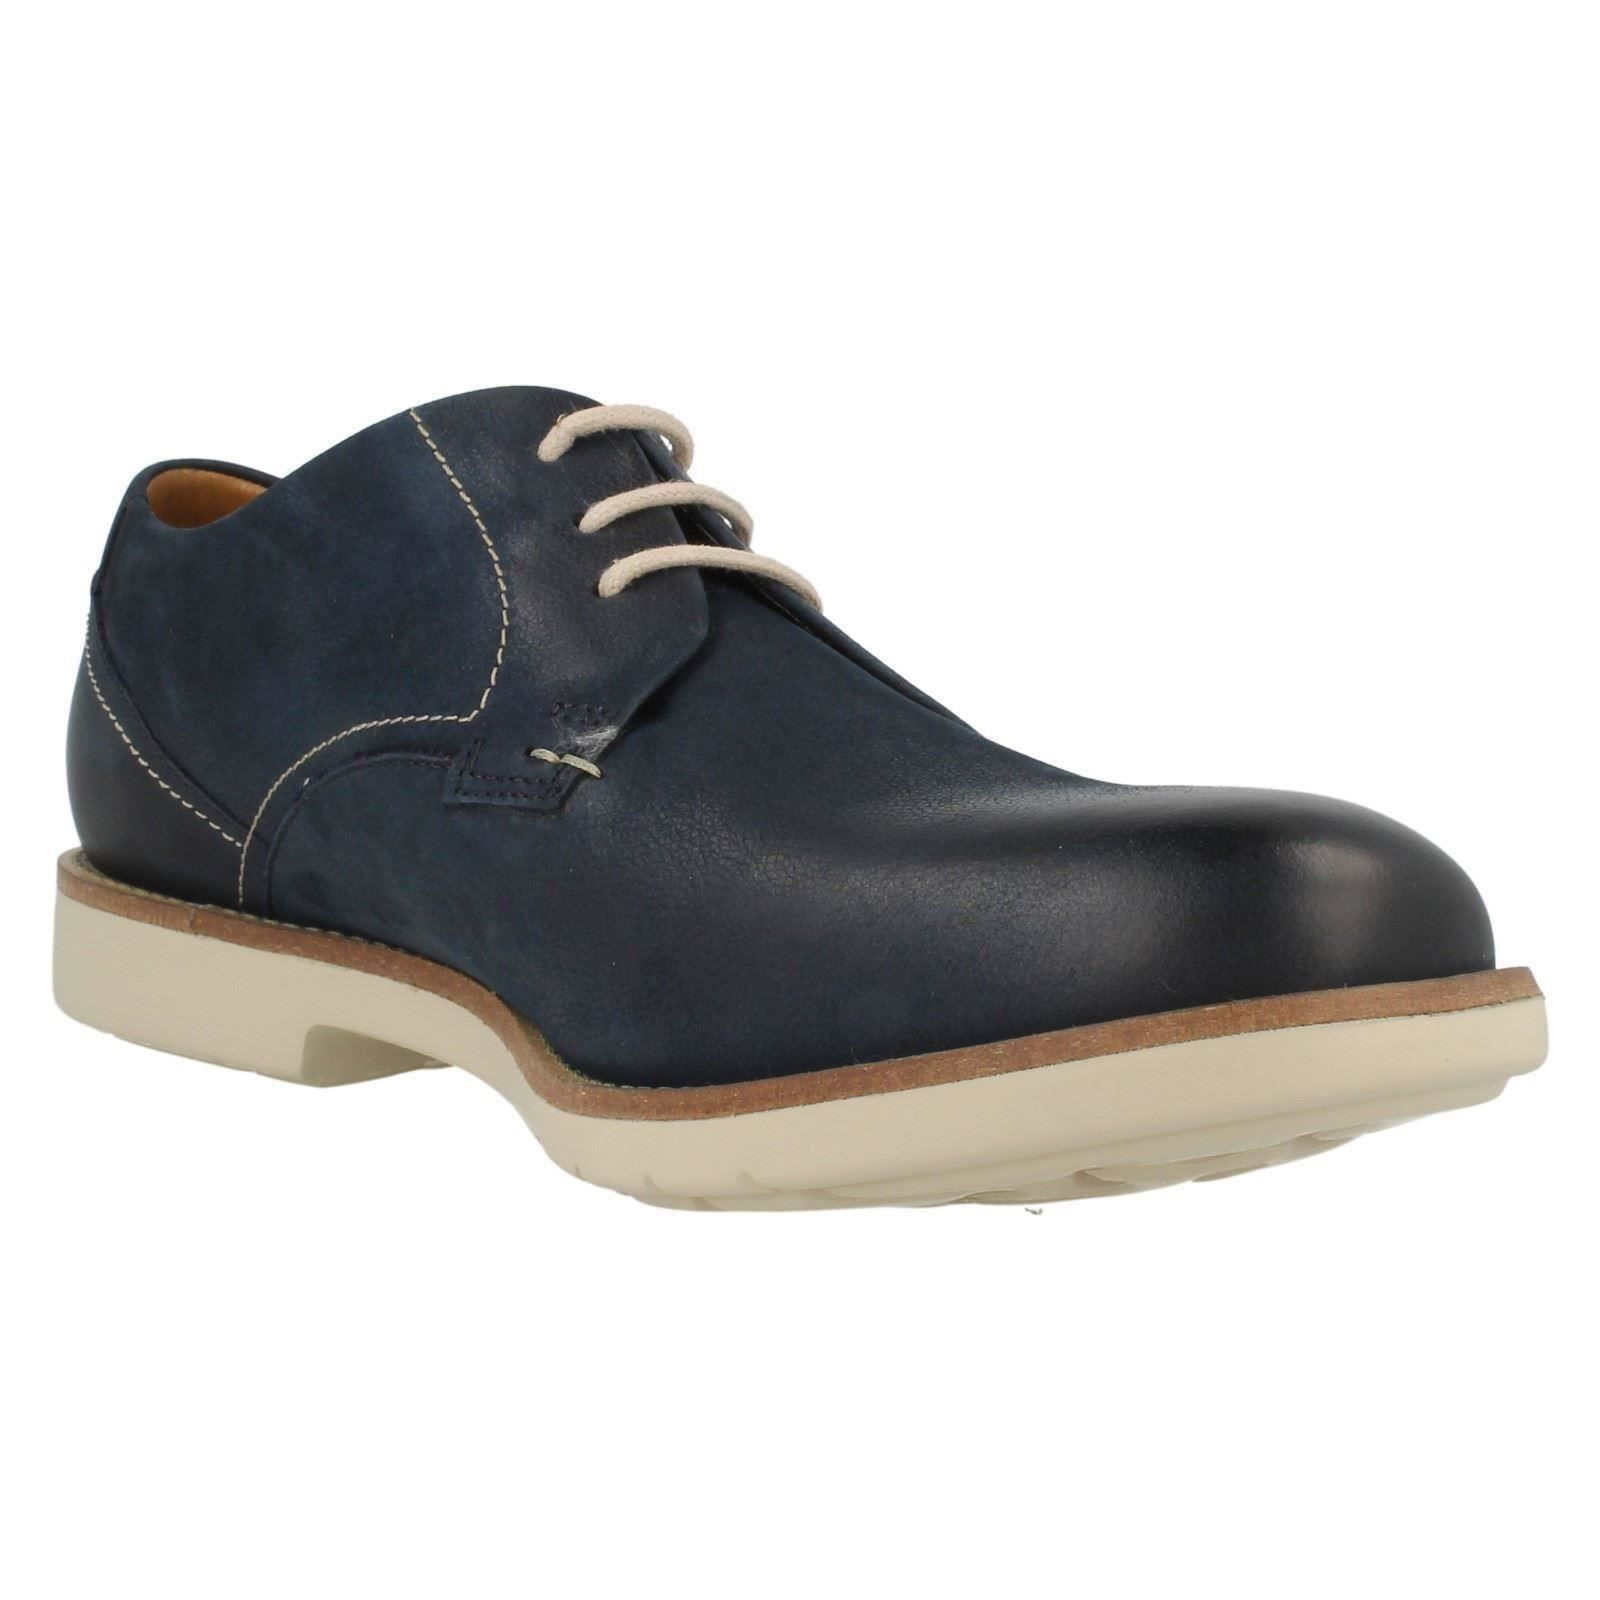 Clarks Wide Fitting Mens Driving Shoes